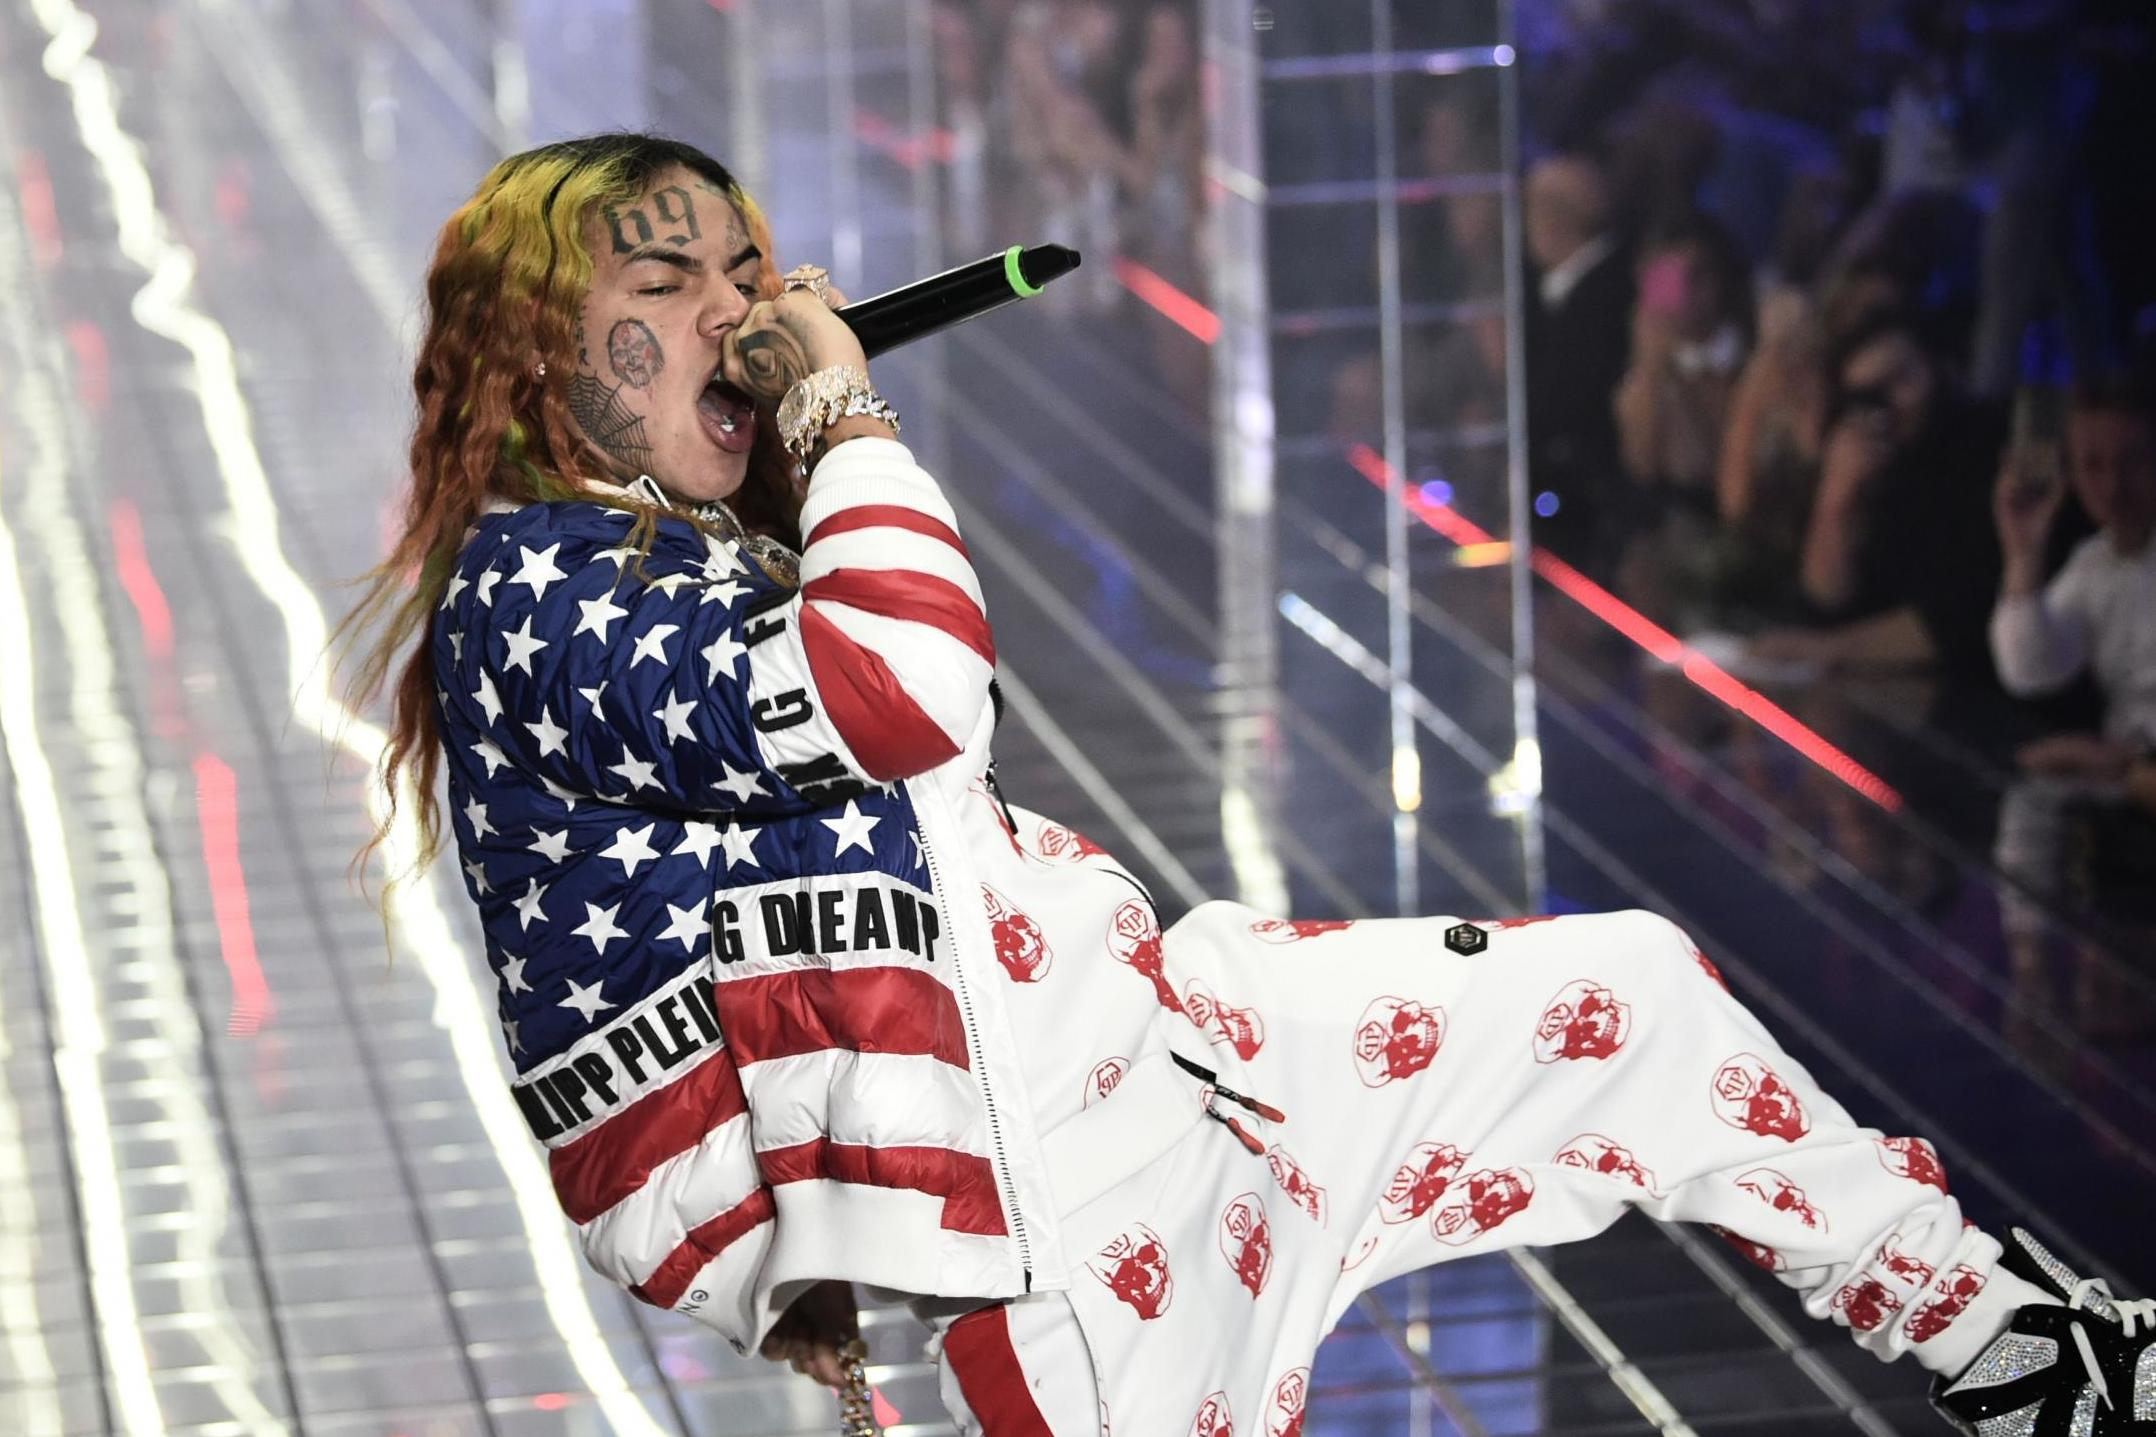 'Gooba': Tekashi 6ix9ine unveils first new song and music video since prison release thumbnail